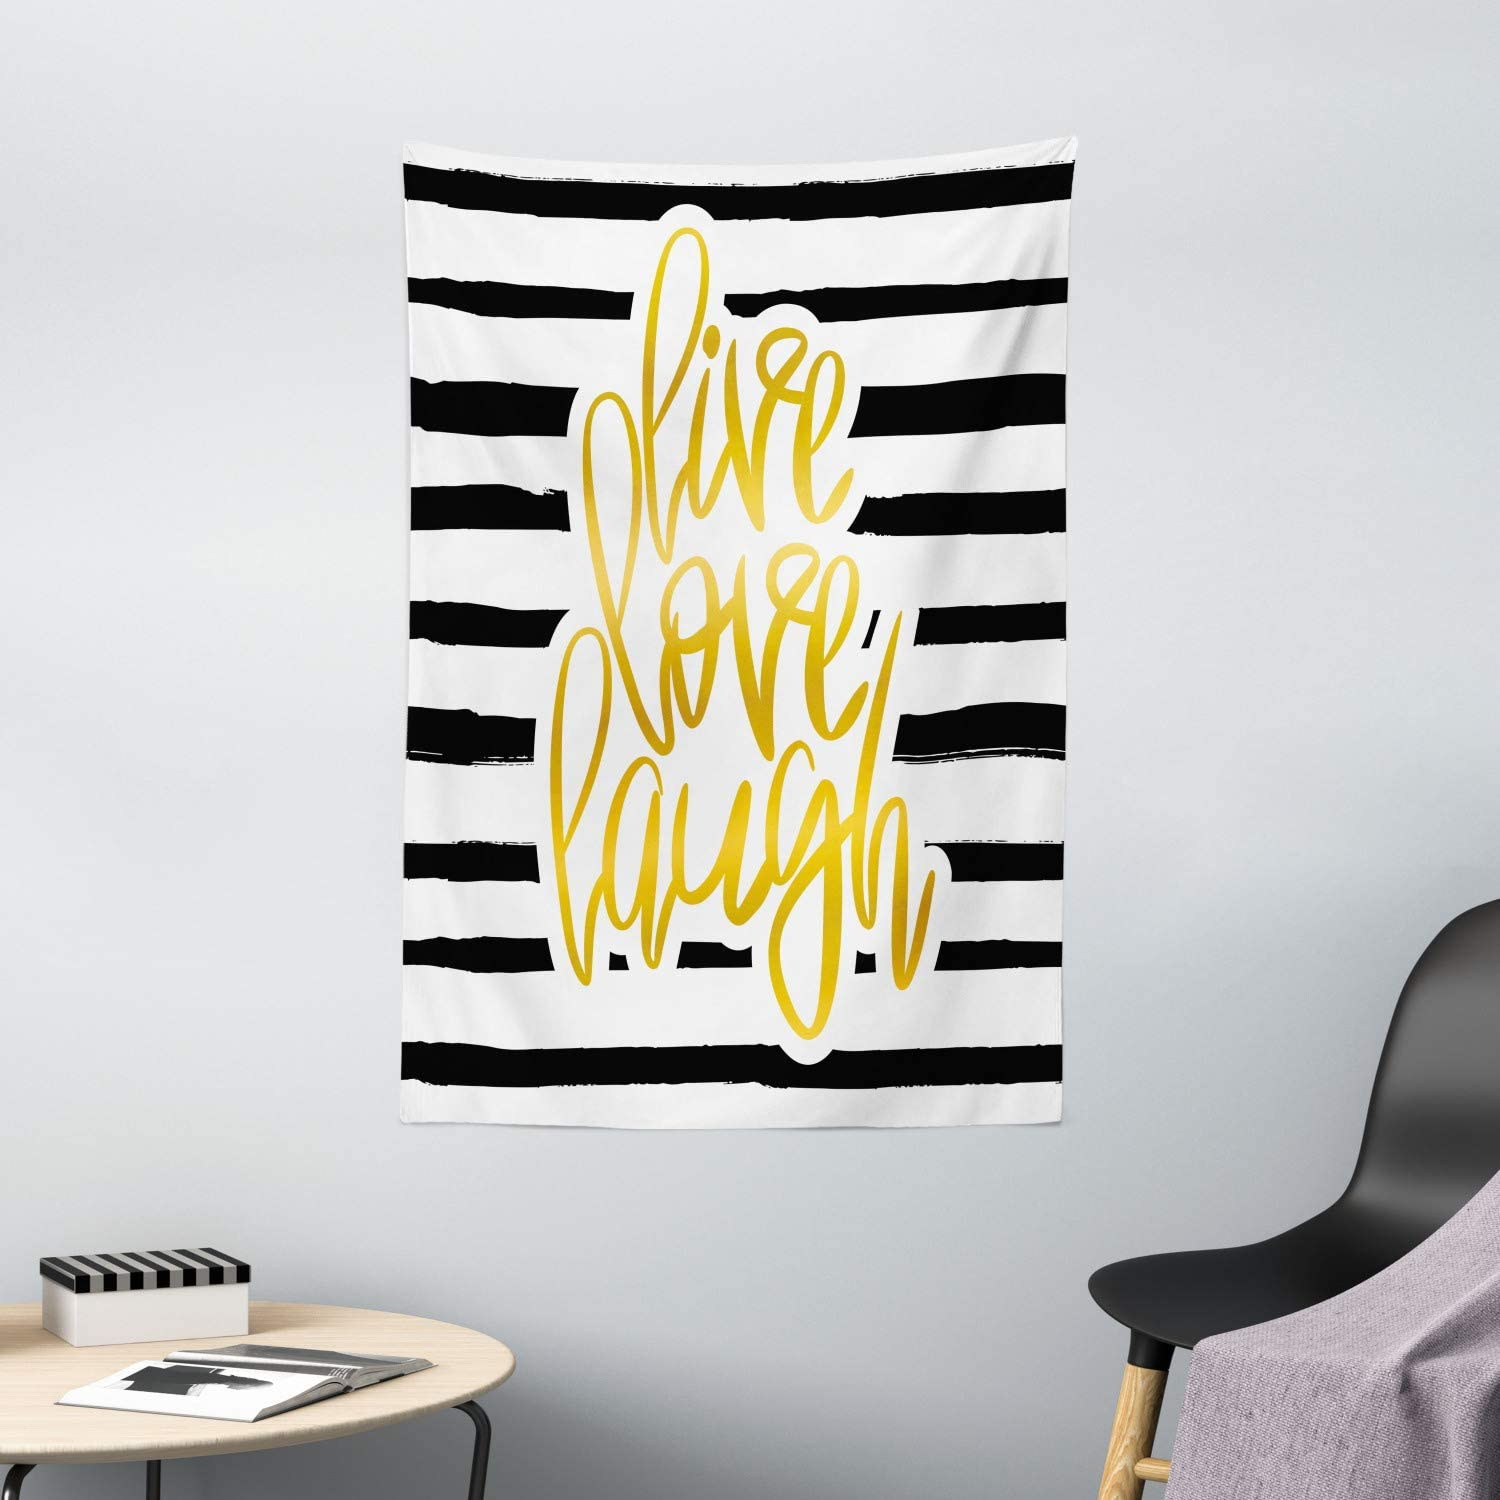 Amazon Com Ambesonne Live Laugh Love Tapestry Romantic Design Hand Drawn Stripes And Calligraphic Text Wall Hanging For Bedroom Living Room Dorm Decor 40 X 60 White Yellow Home Kitchen